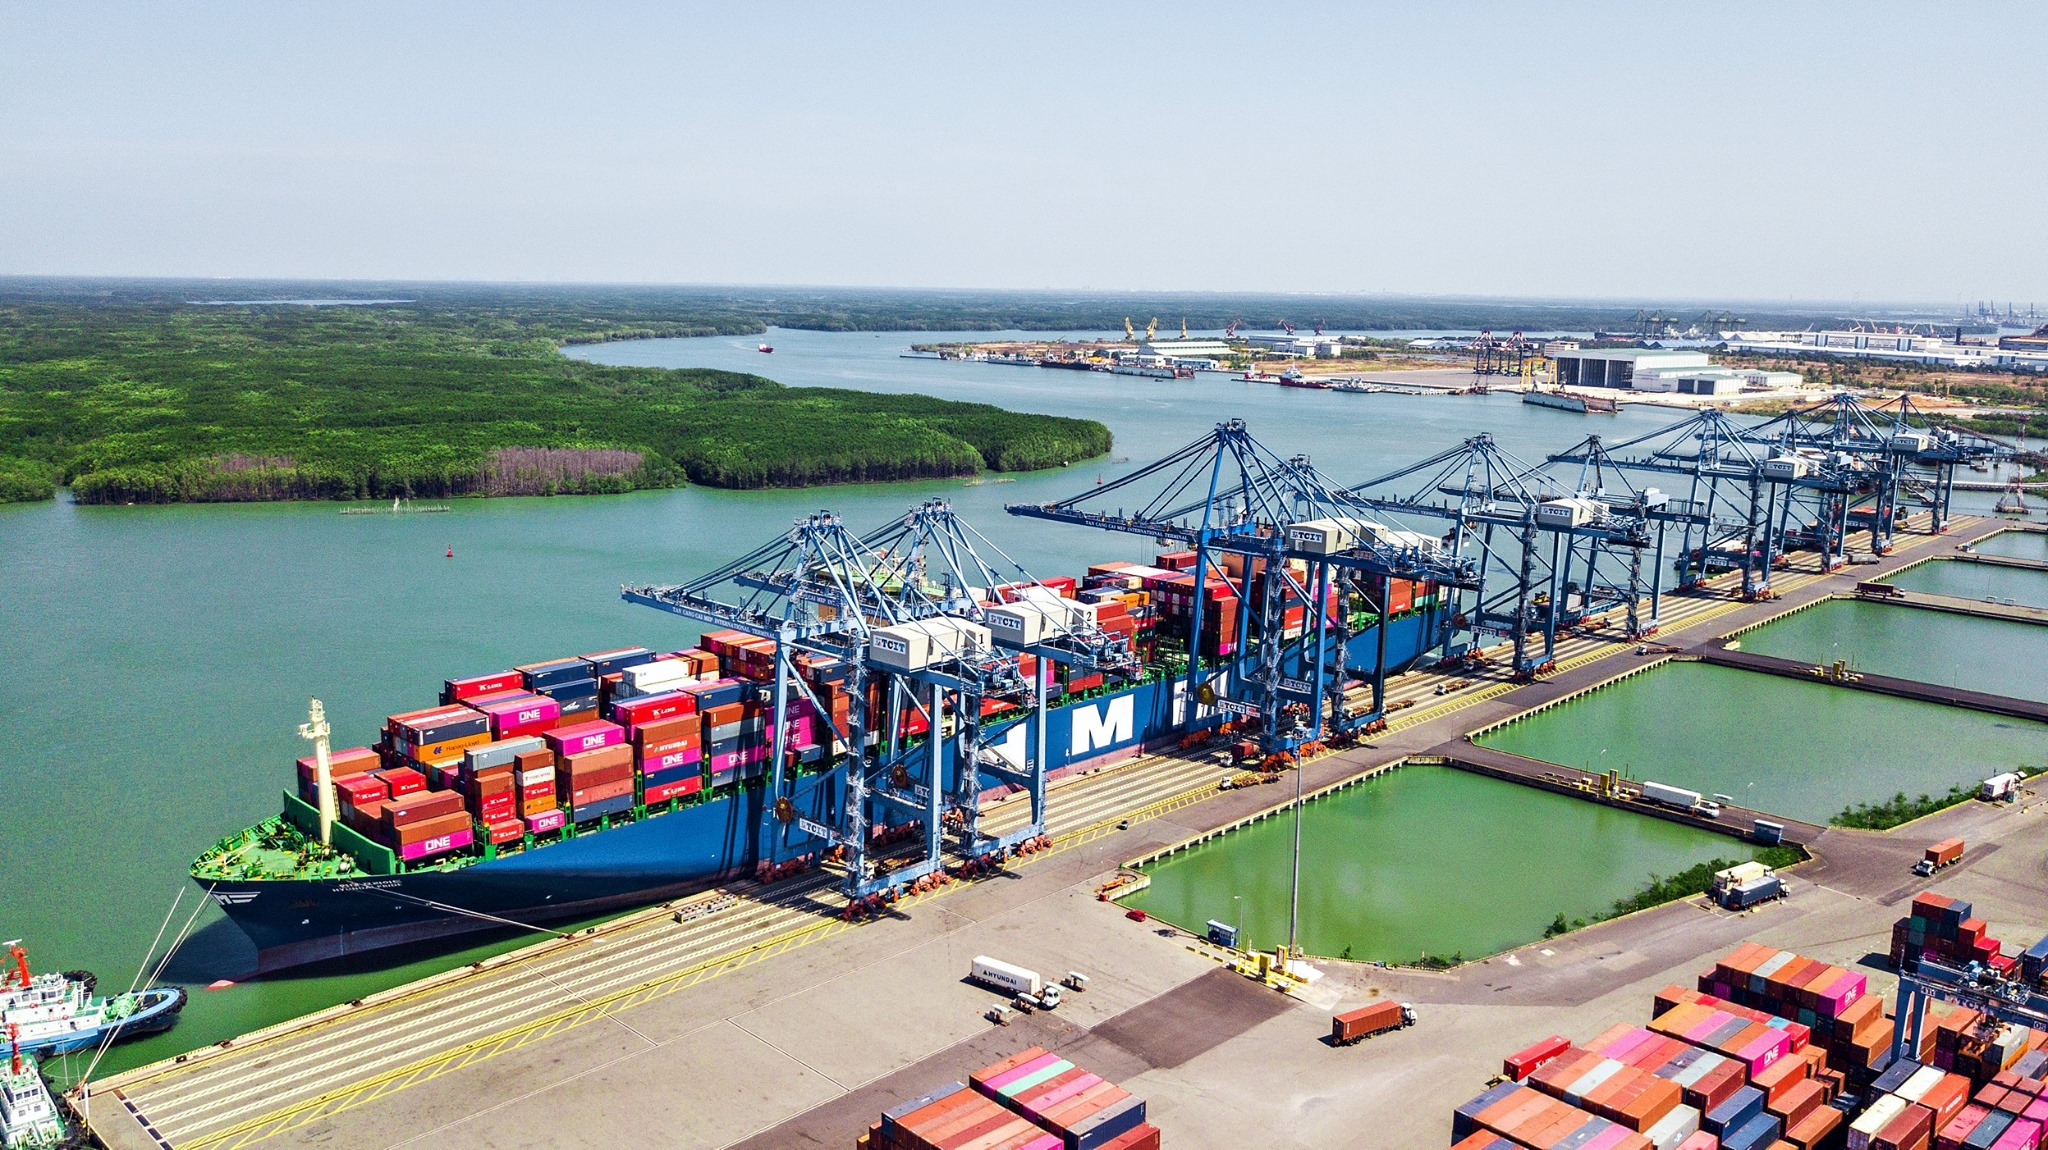 TCIT WELCOMES HUYNDAI PRIDE - HMM BIGGEST CONTAINER VESSEL TO EVER CALL VIETNAM